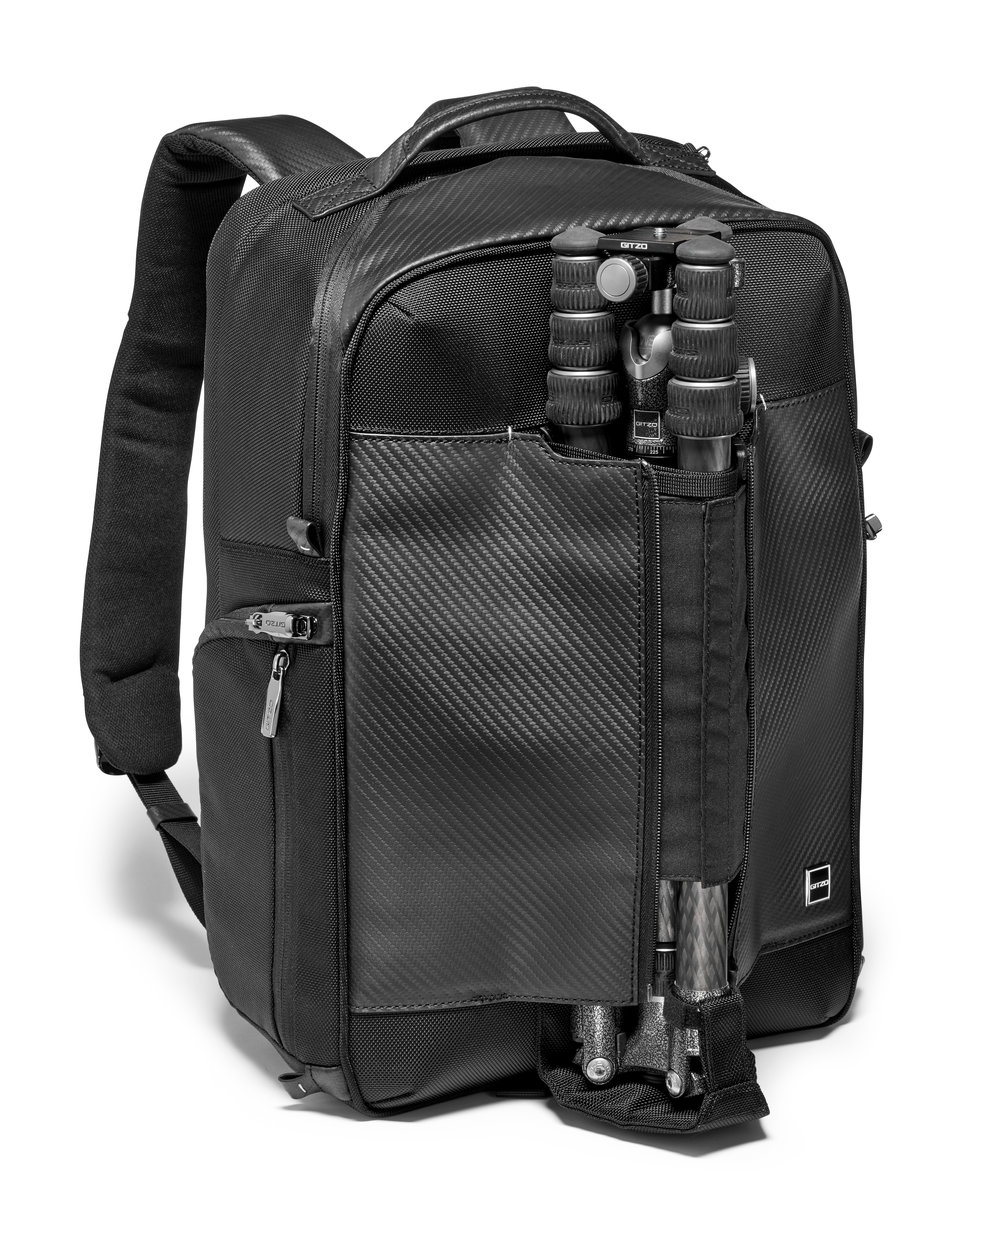 HR-GITZO_camera_bag_GCB100BP_tripod_A.jpg